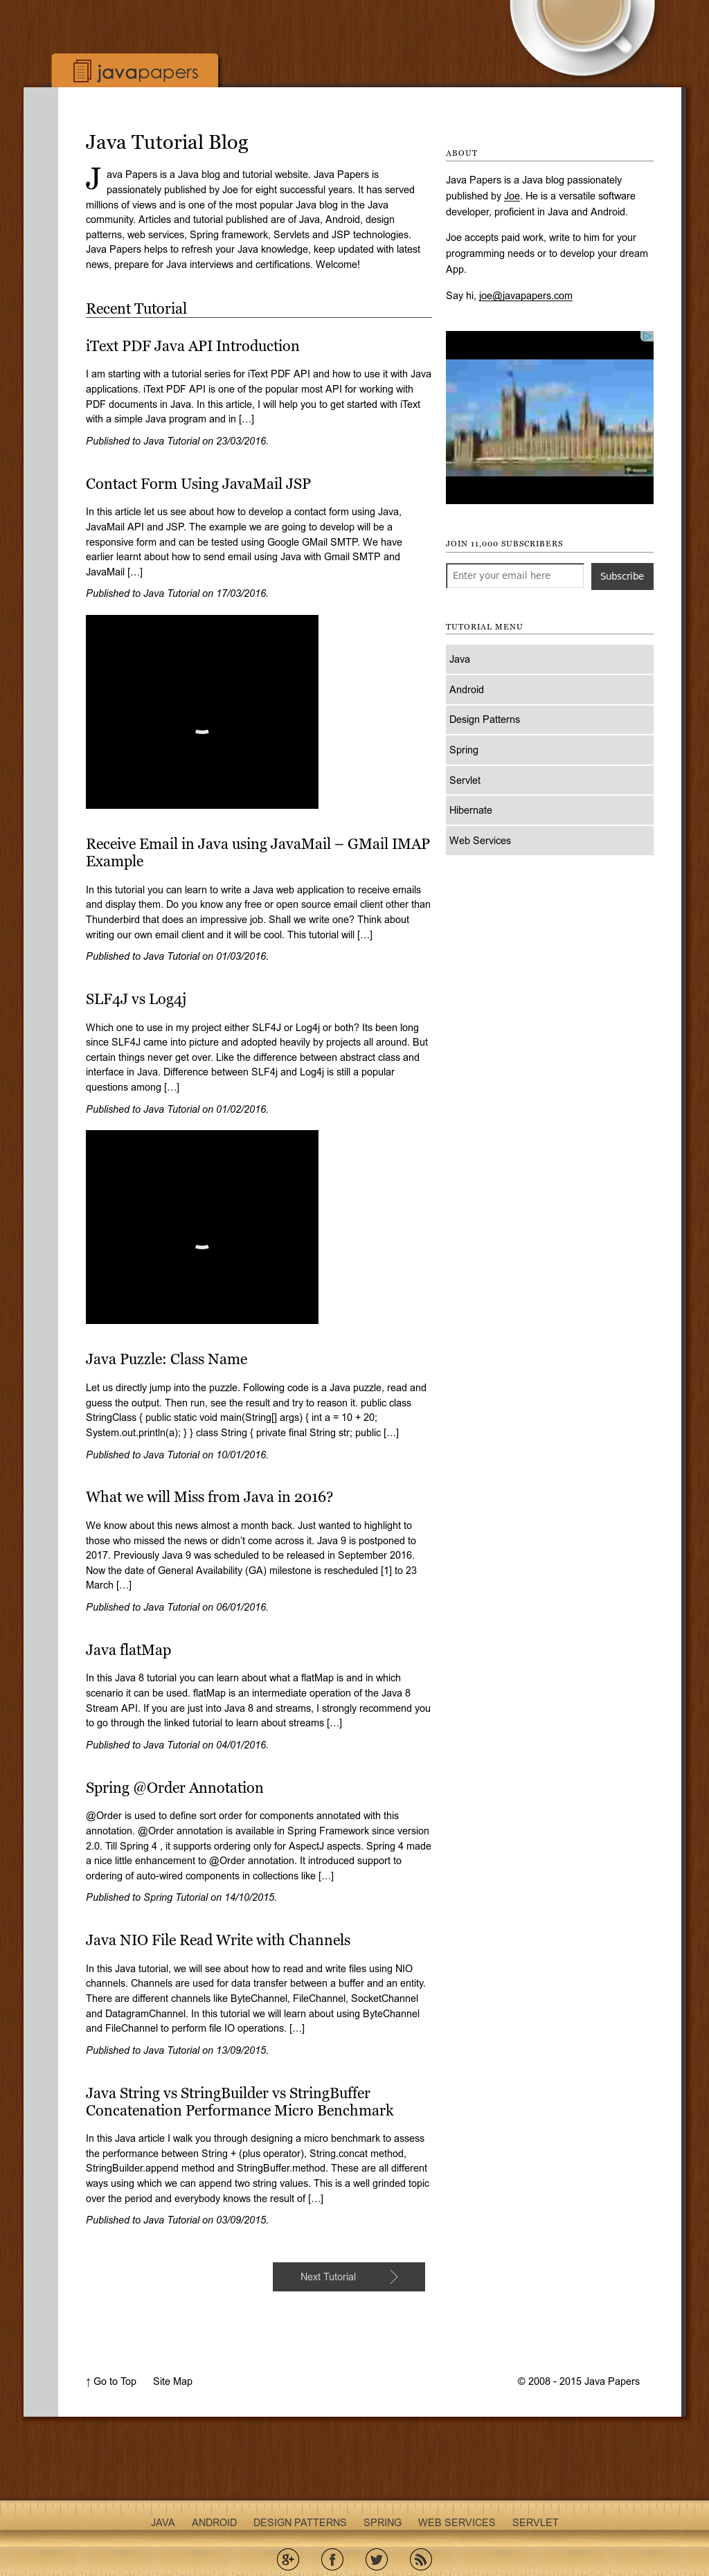 Owler Reports - Javapapers Blog Android App with Multi